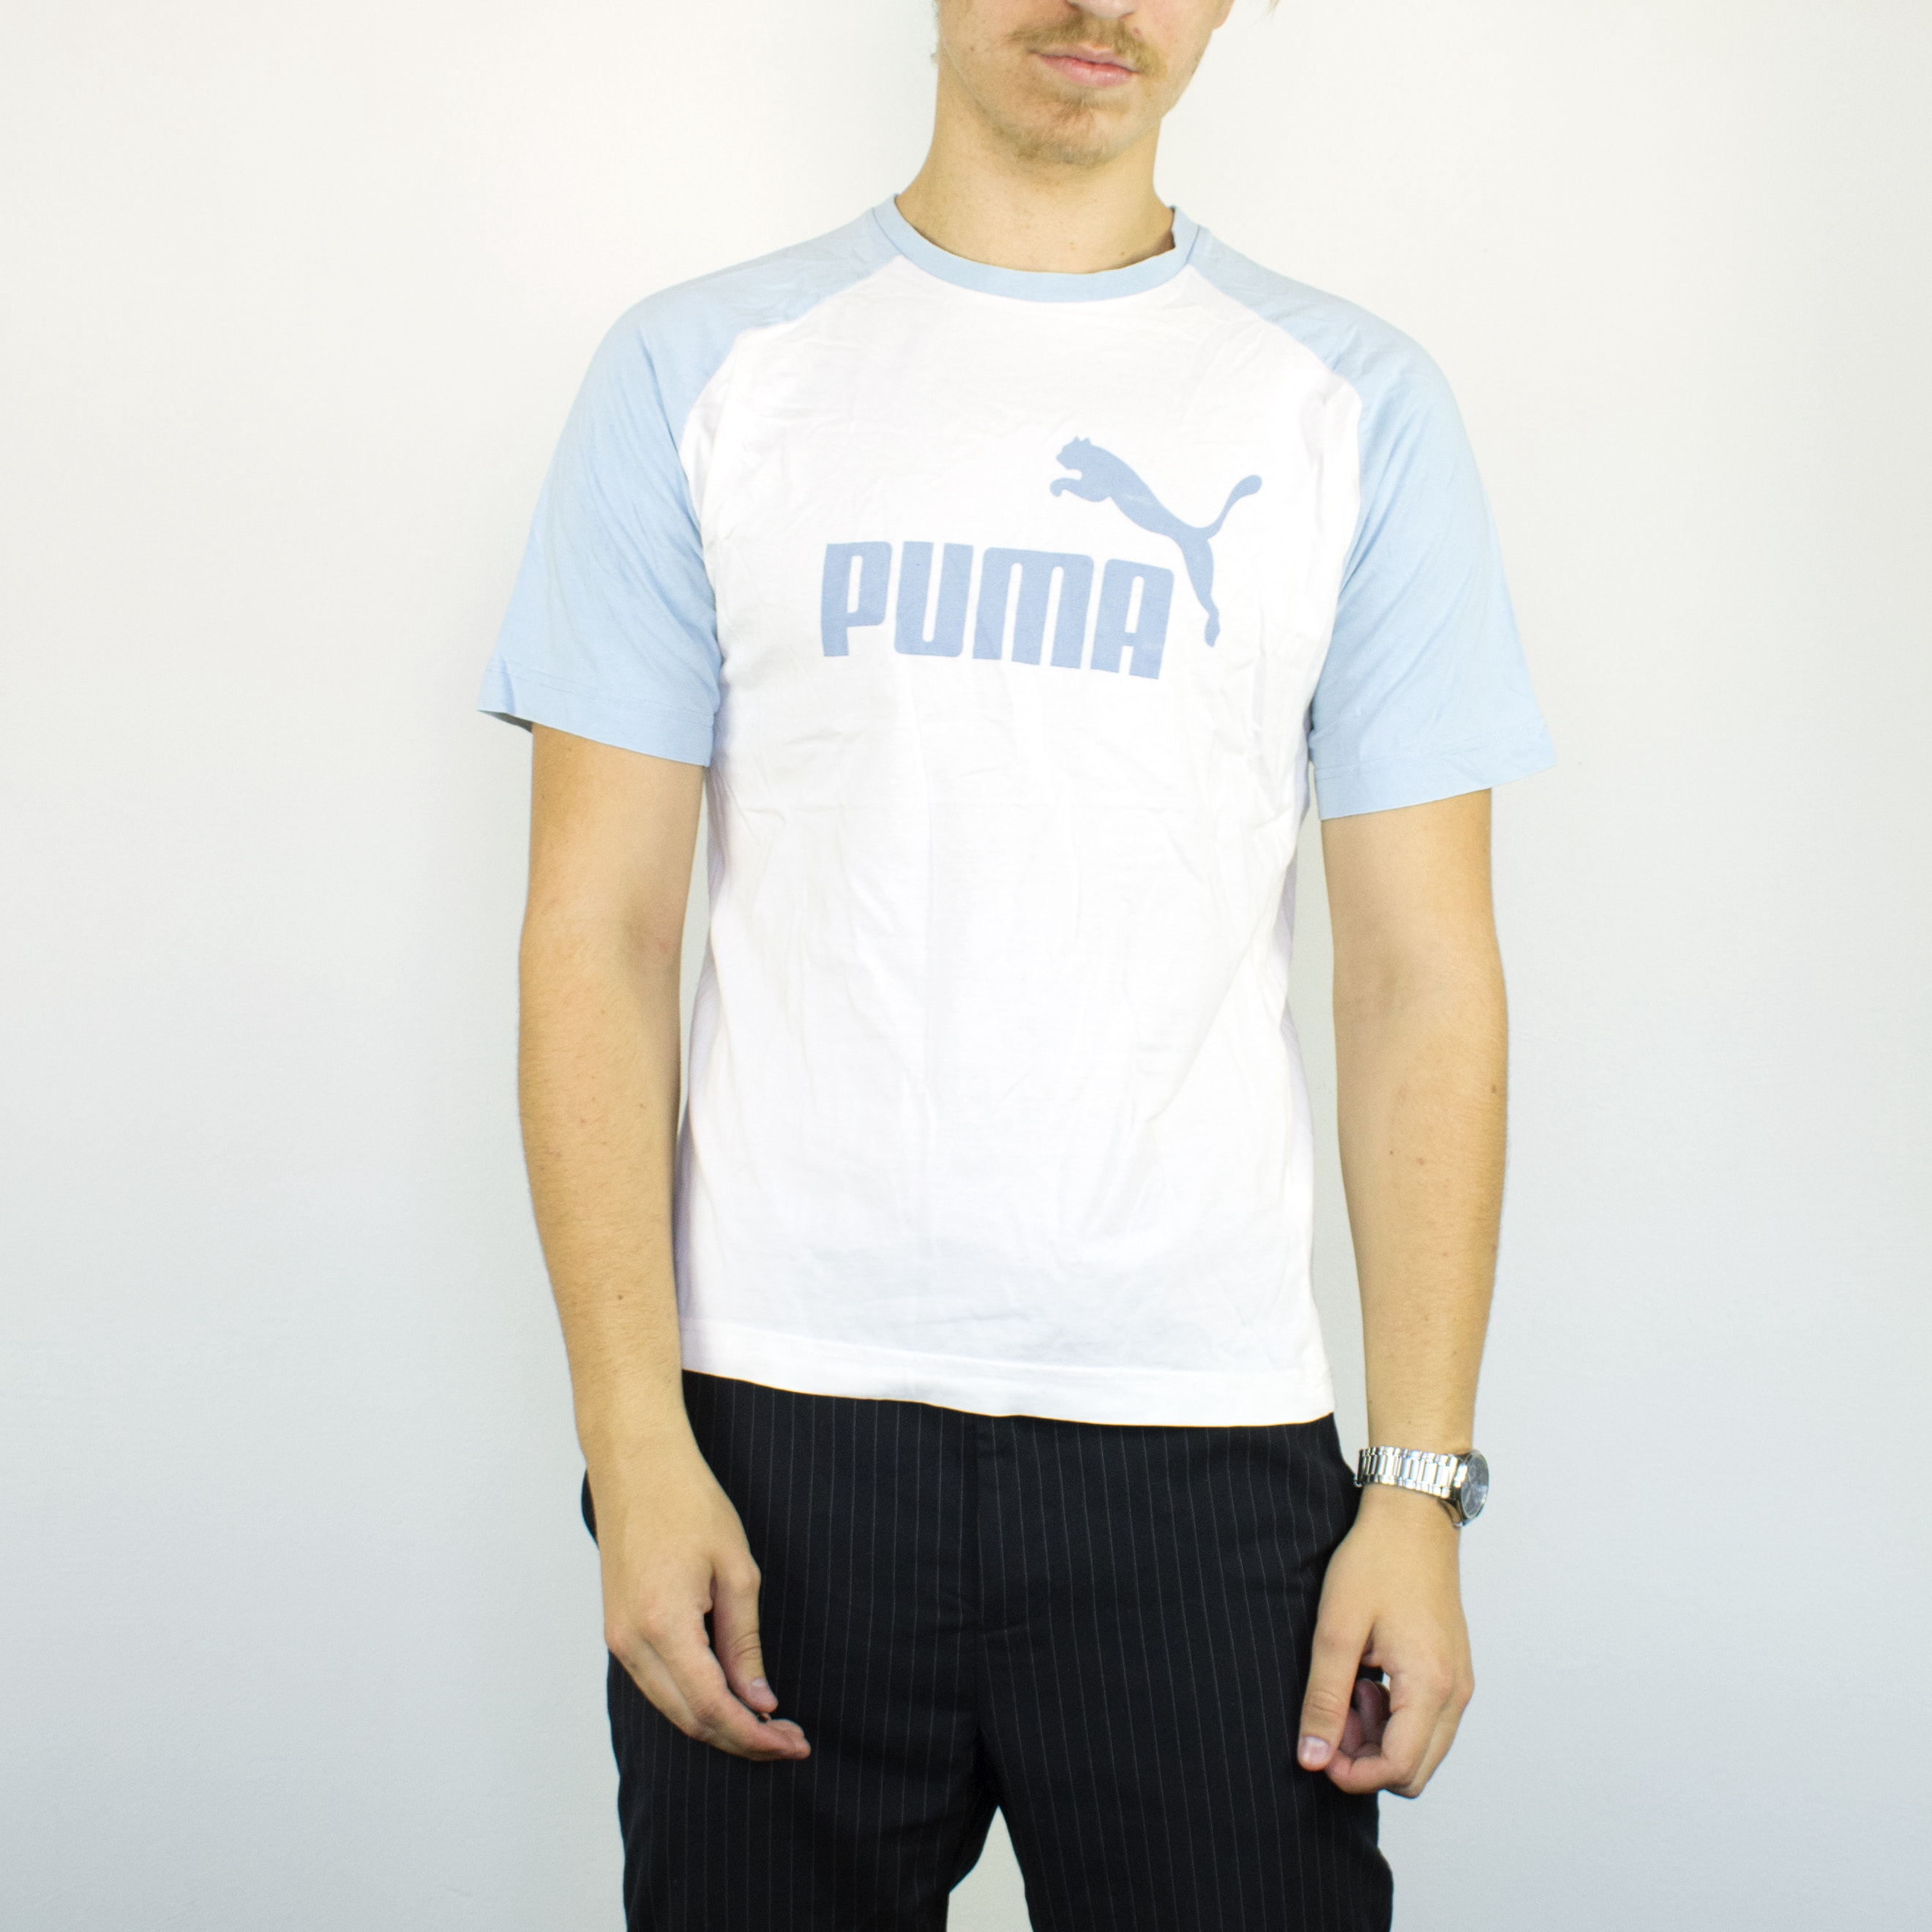 Unisex Vintage Puma t-shirt in white has a big logo on the front